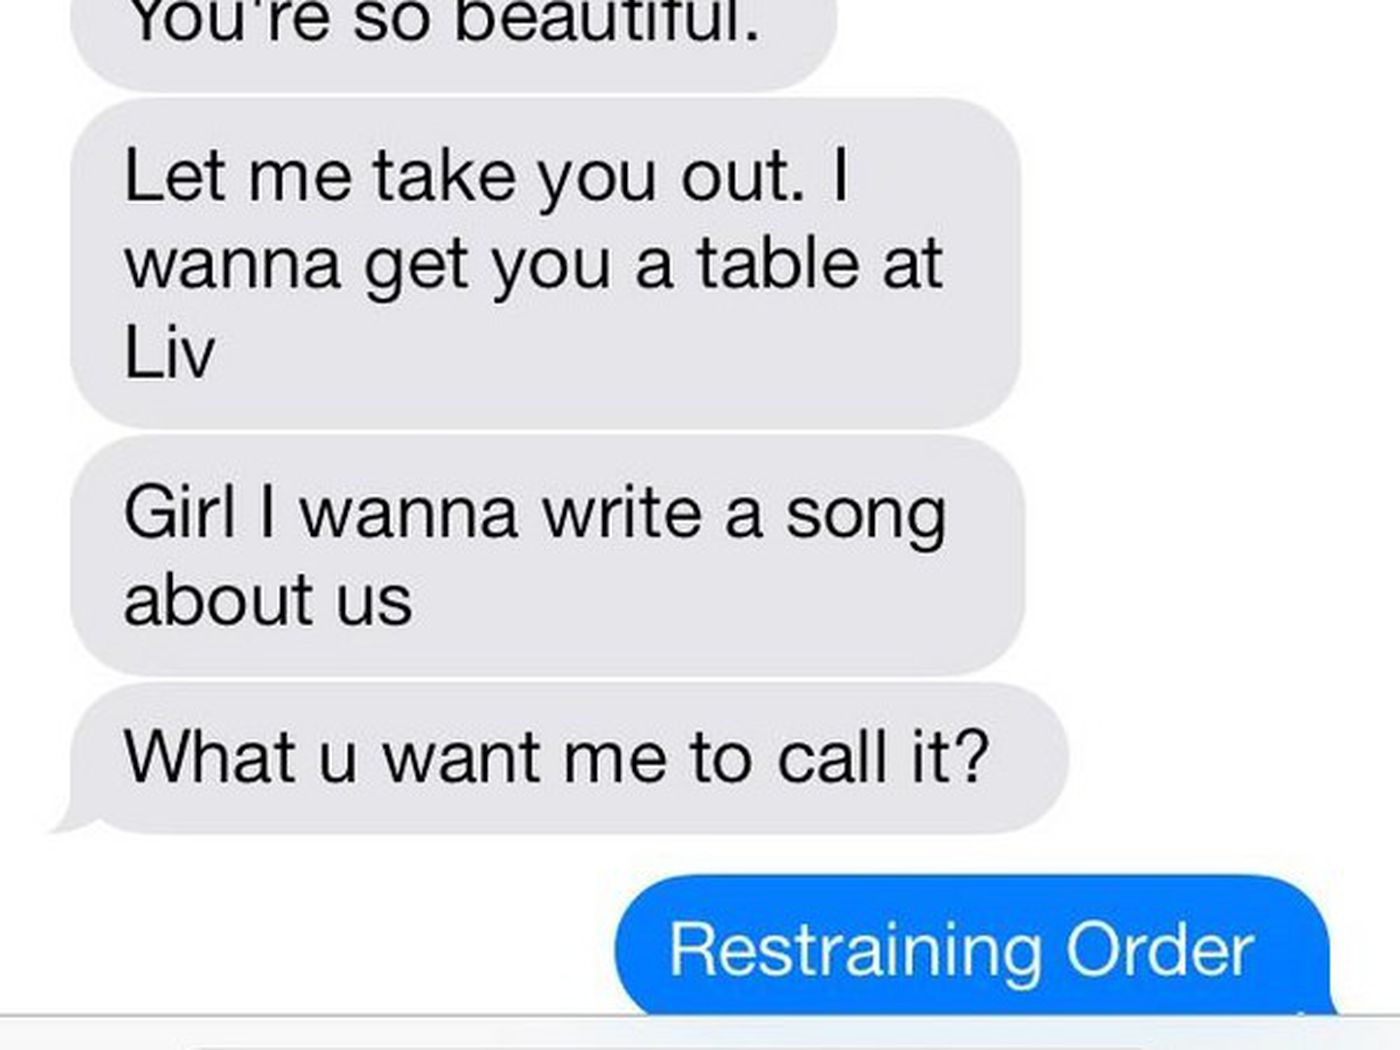 22 Insanely Desperate Text Messages (NSFW) - Funny Or Die